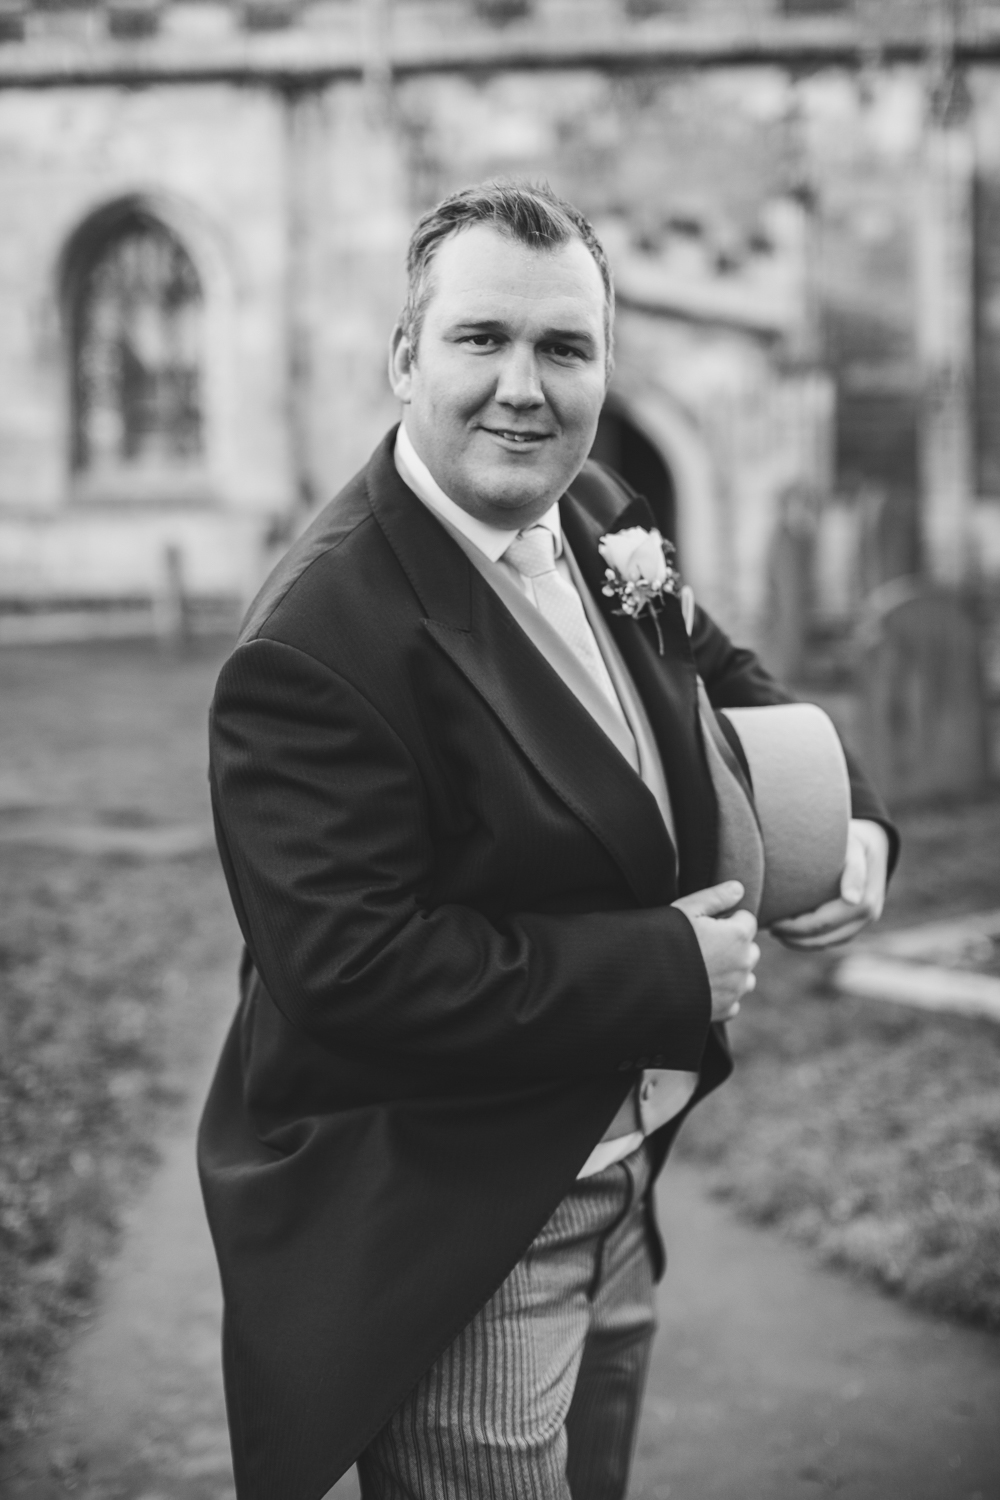 rossington hall wedding photographer photogenick blog26.jpg